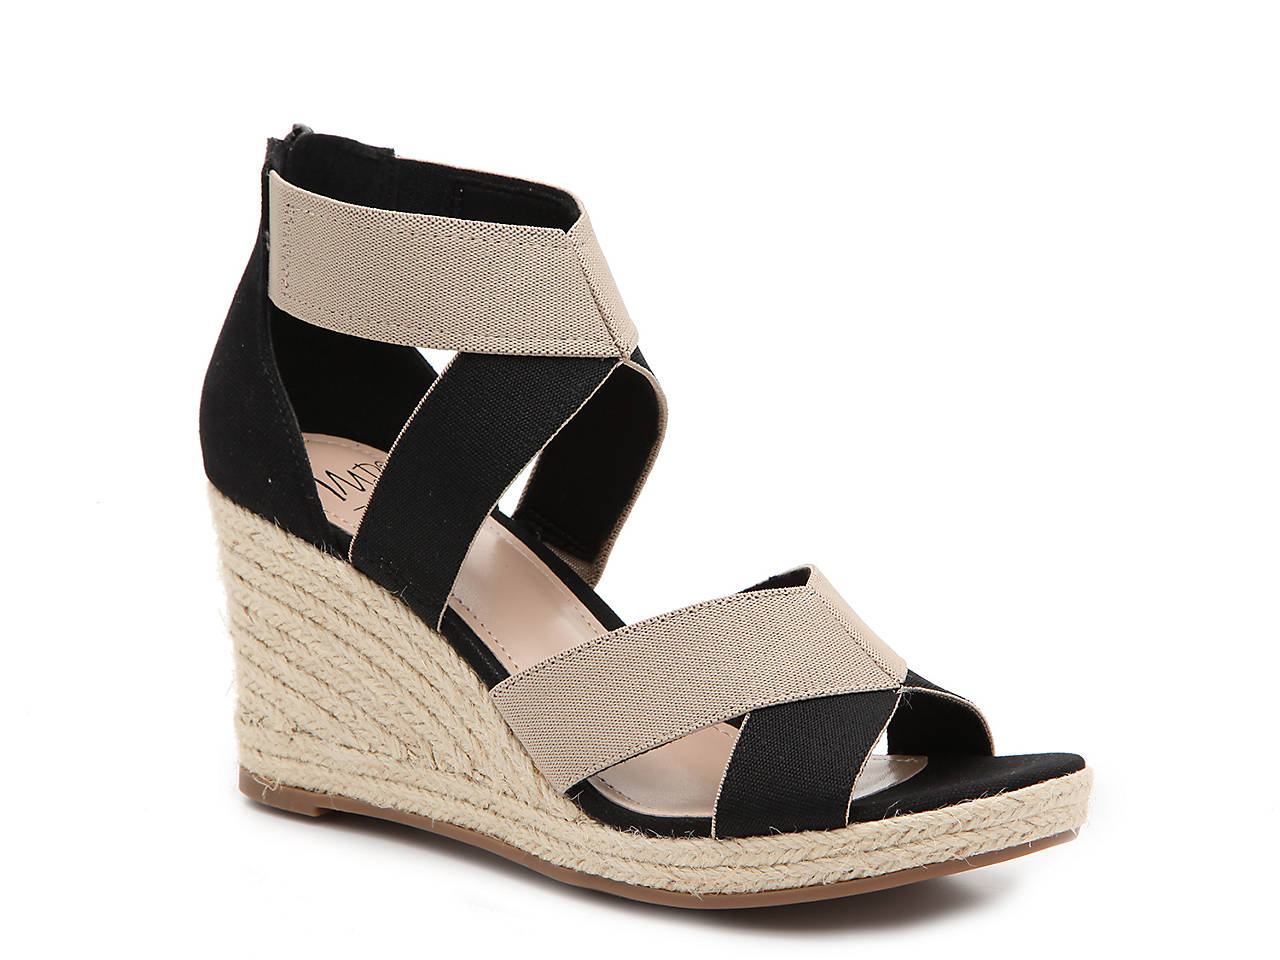 92ee89afab4c Impo Timber Espadrille Wedge Sandal Women s Shoes